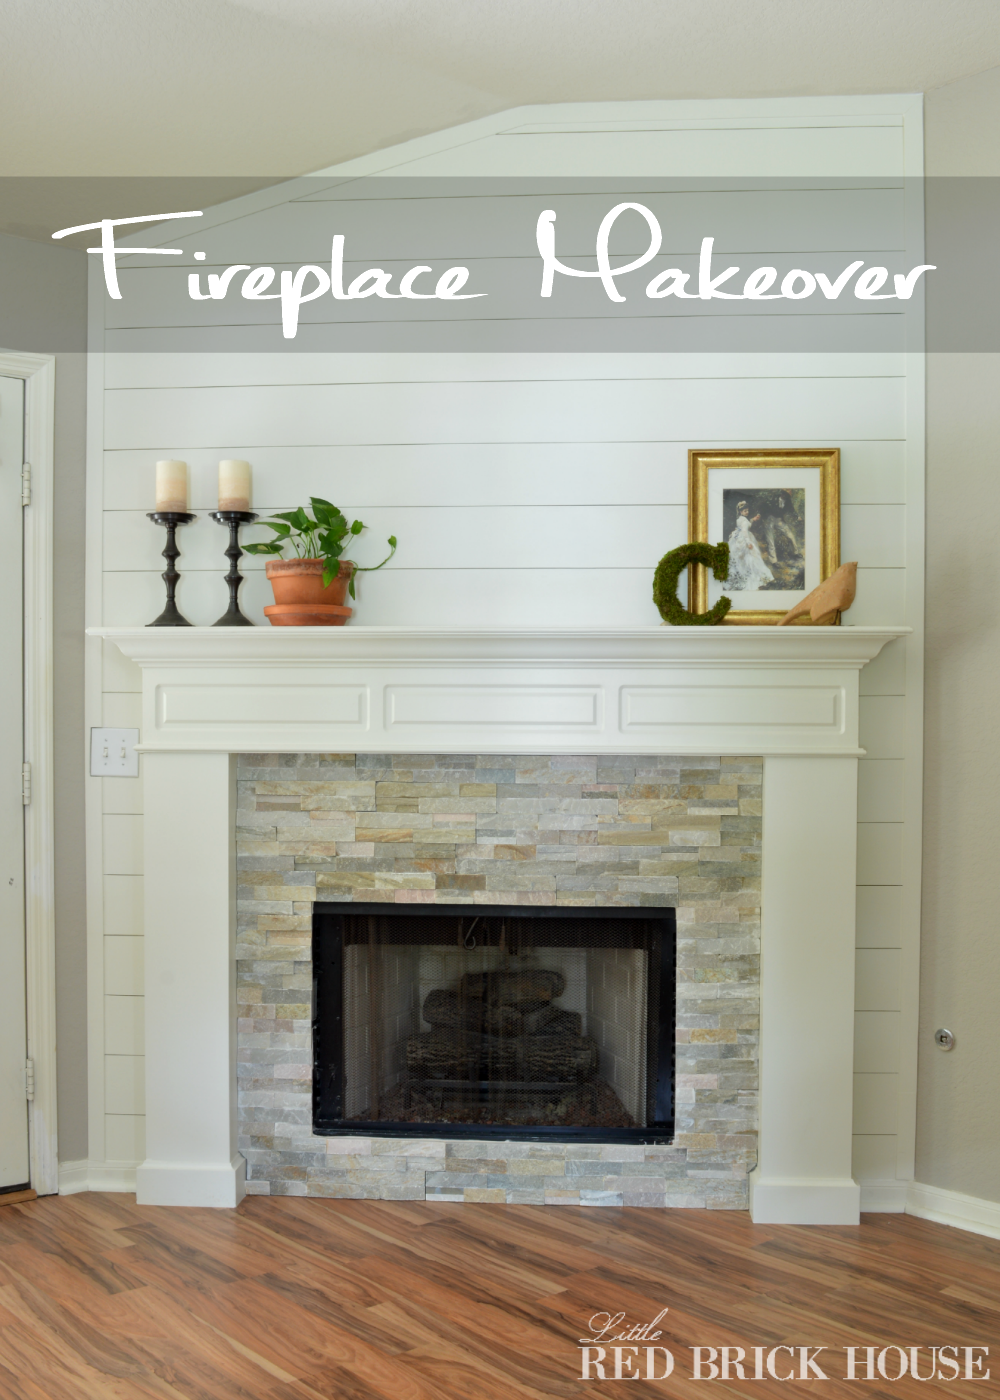 Fireplace Makeover Could Just Do This But The Whole Wall Would Be Better